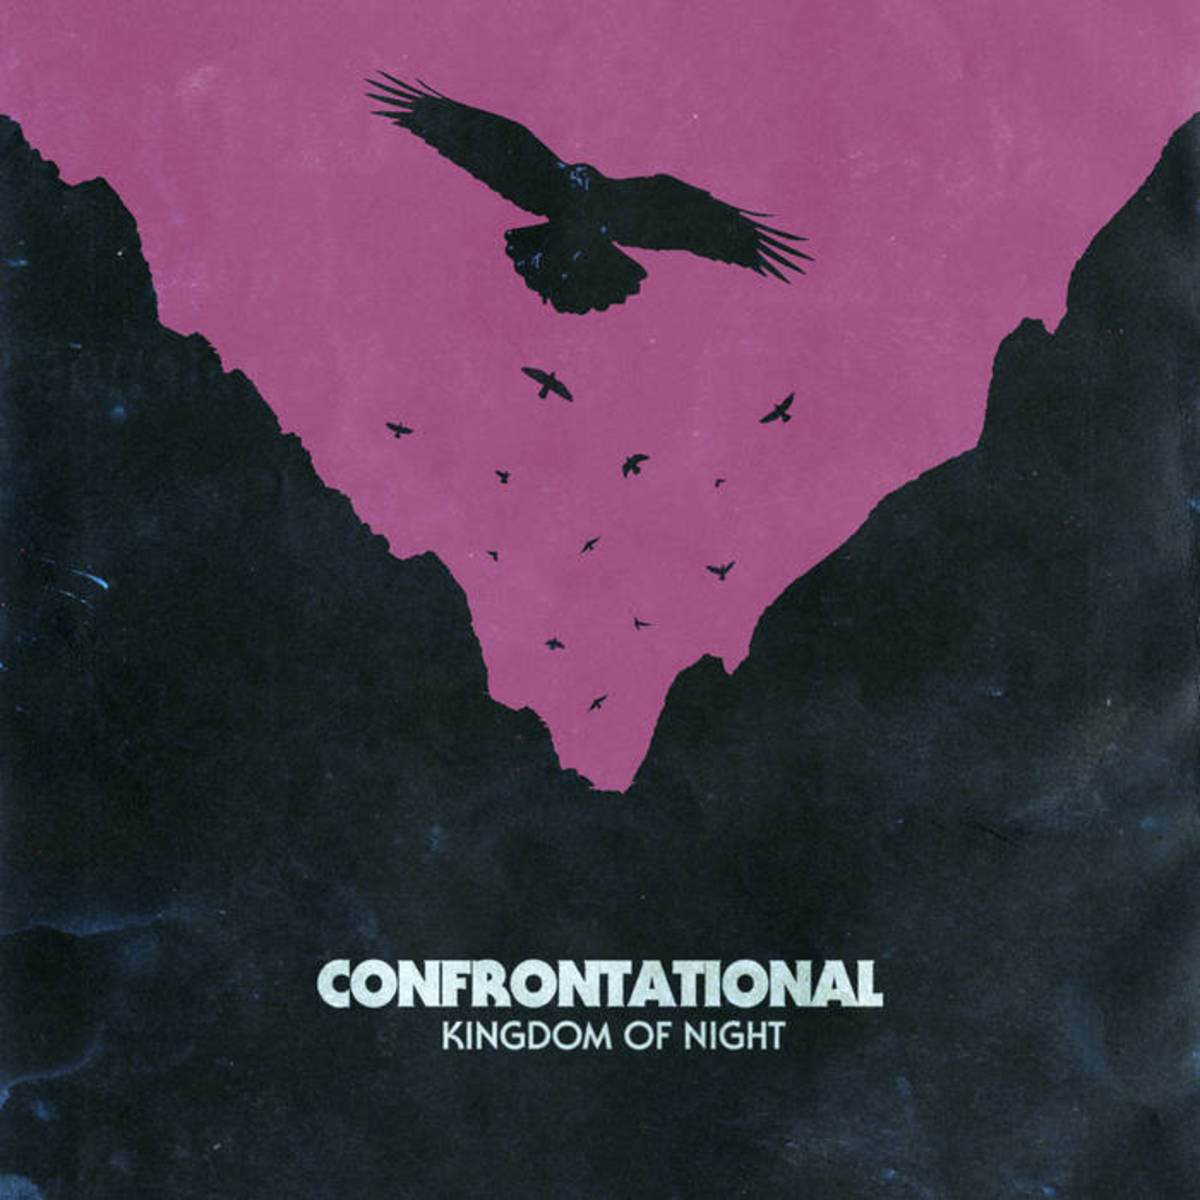 """Synth Album Review: """"Kingdom of Night"""" by CONFRONTATIONAL"""